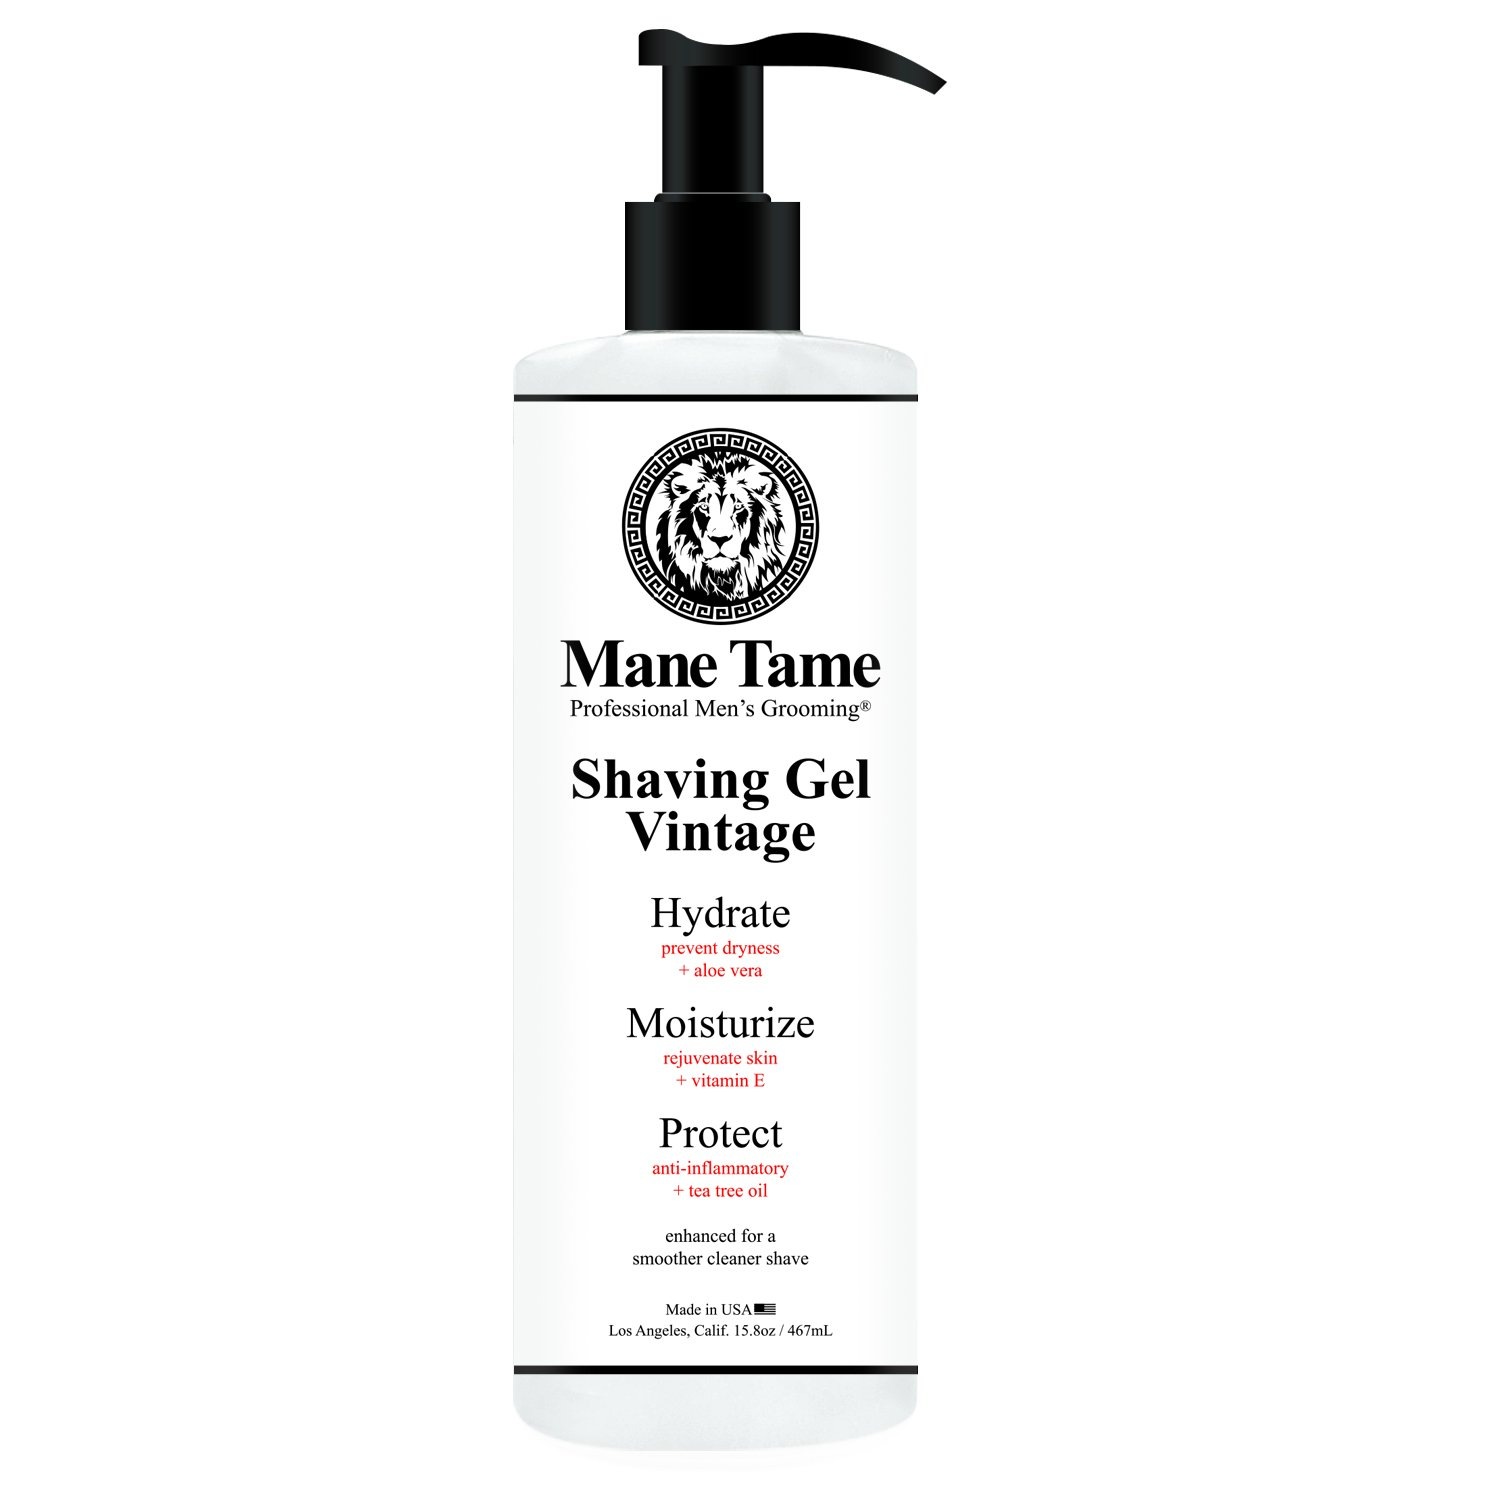 Mane Tame Professional Men's Grooming Shaving Gel, Vintage Collection, Clear Natural Formula with Tea Tree, Aloe Vera, Vitamin E, Professional Barber Quality, Made in USA, 15.8 oz. MT1SHVGEL6